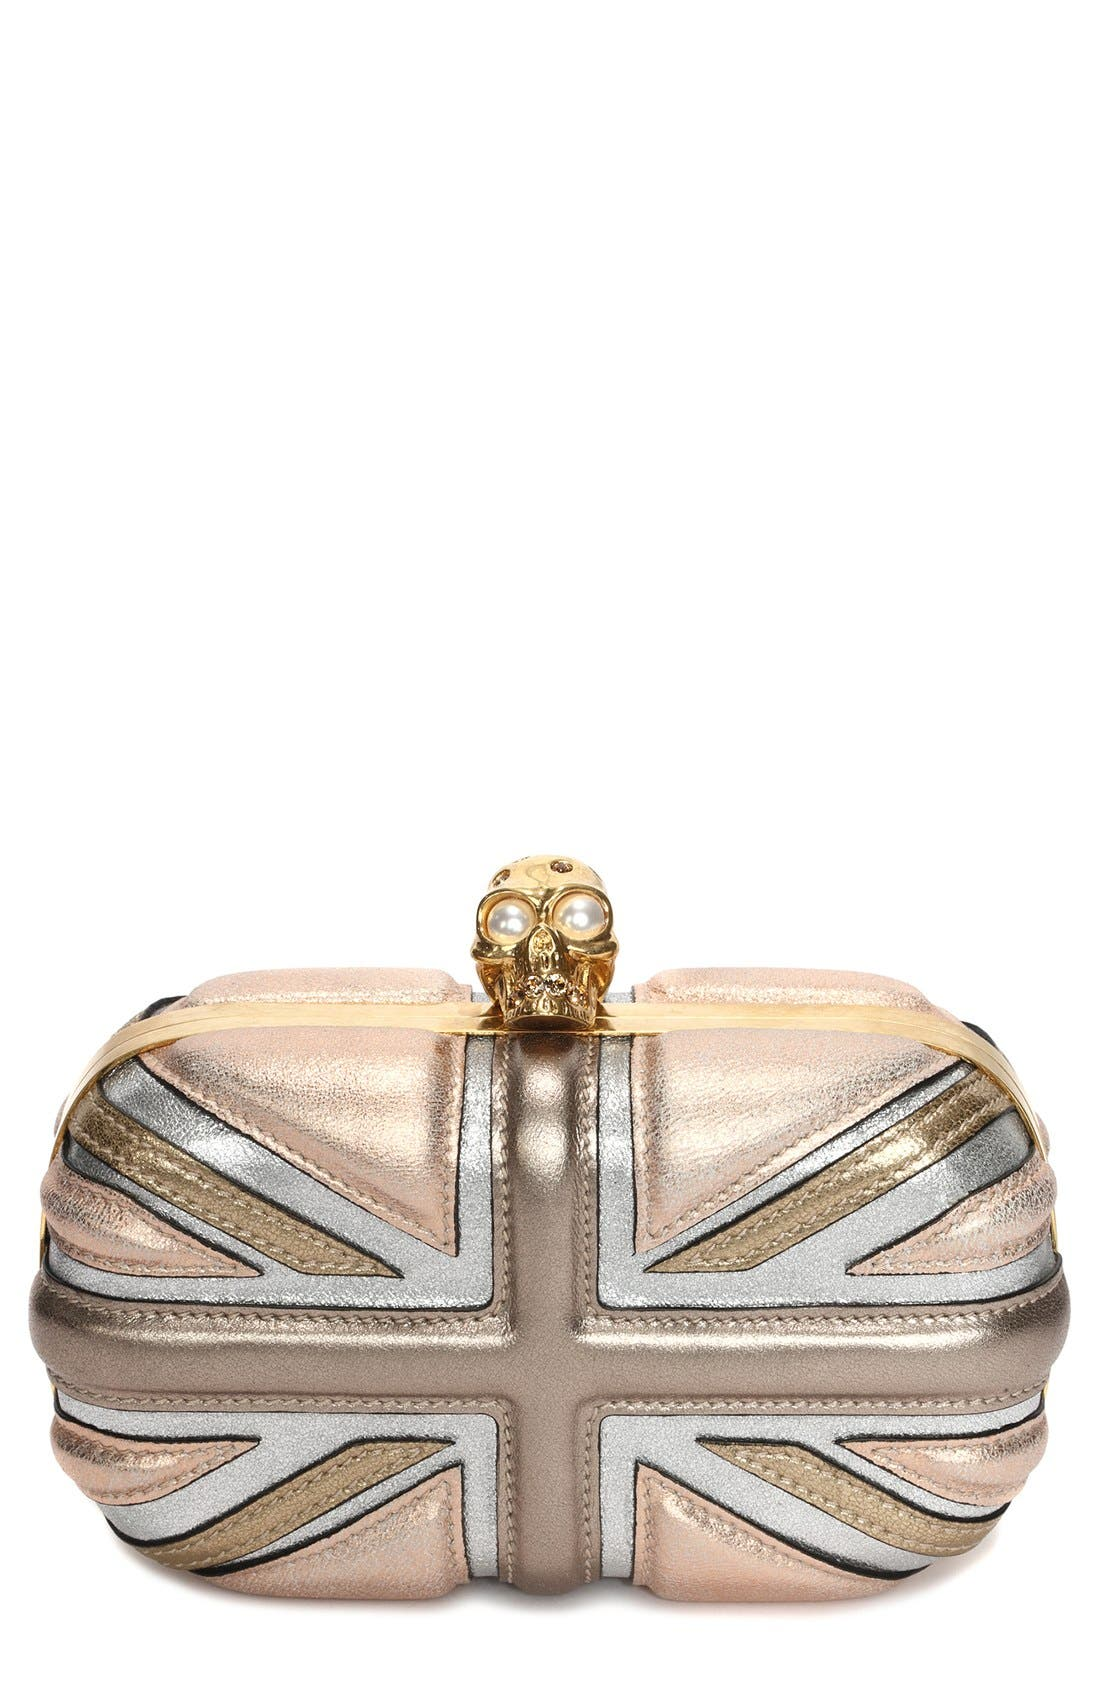 ALEXANDER MCQUEEN 'Britannia' Union Jack Box Clutch, Main, color, 710